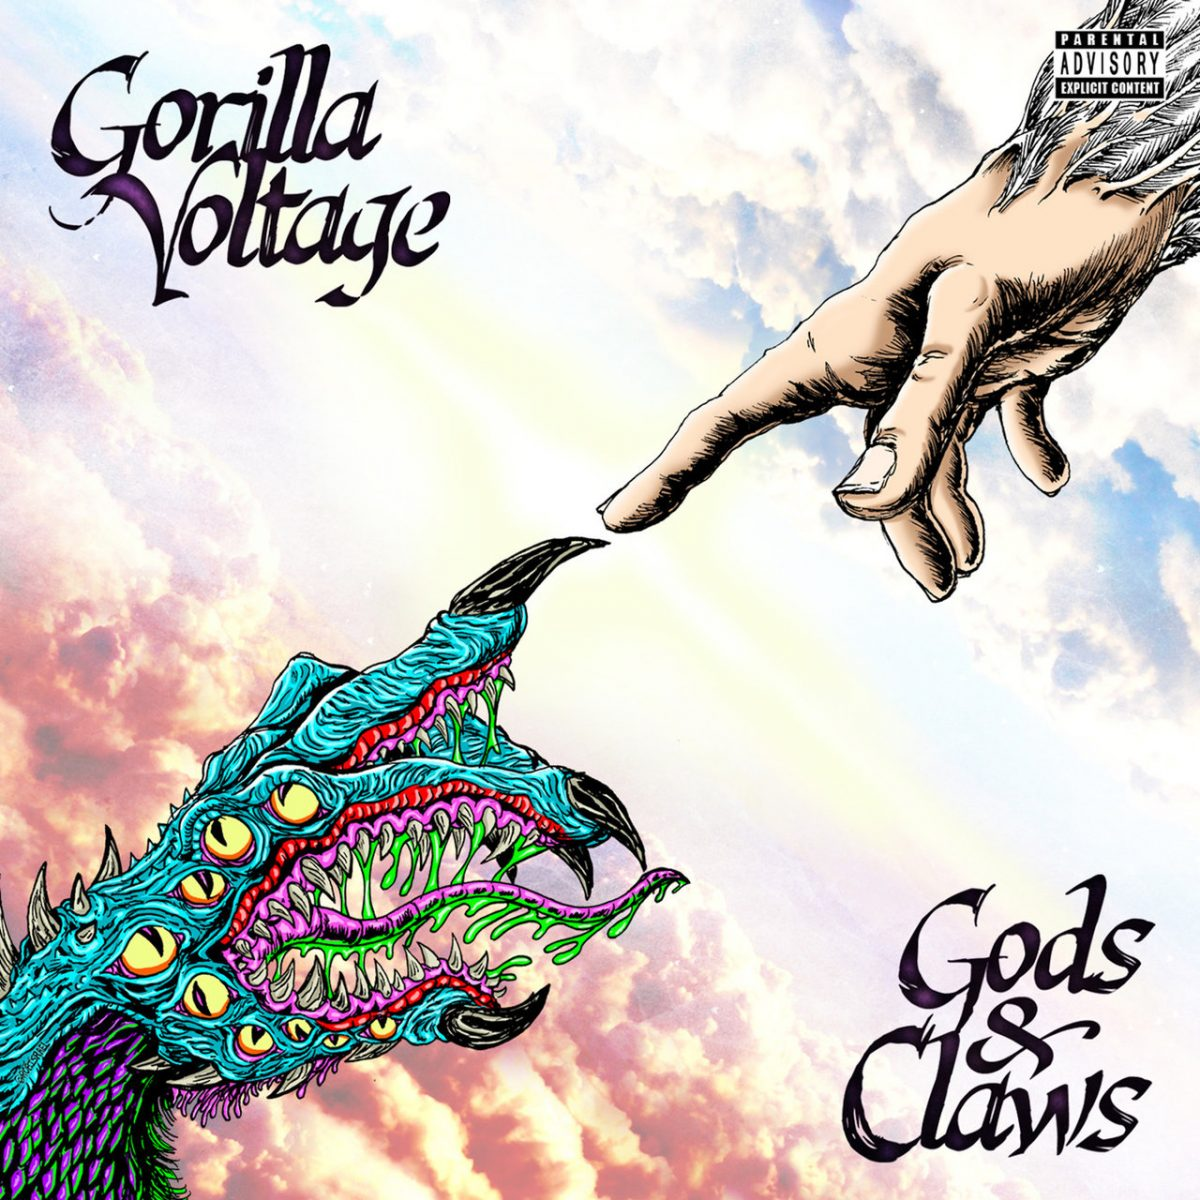 Gorilla Voltage – Gods & Claws (Album Review)